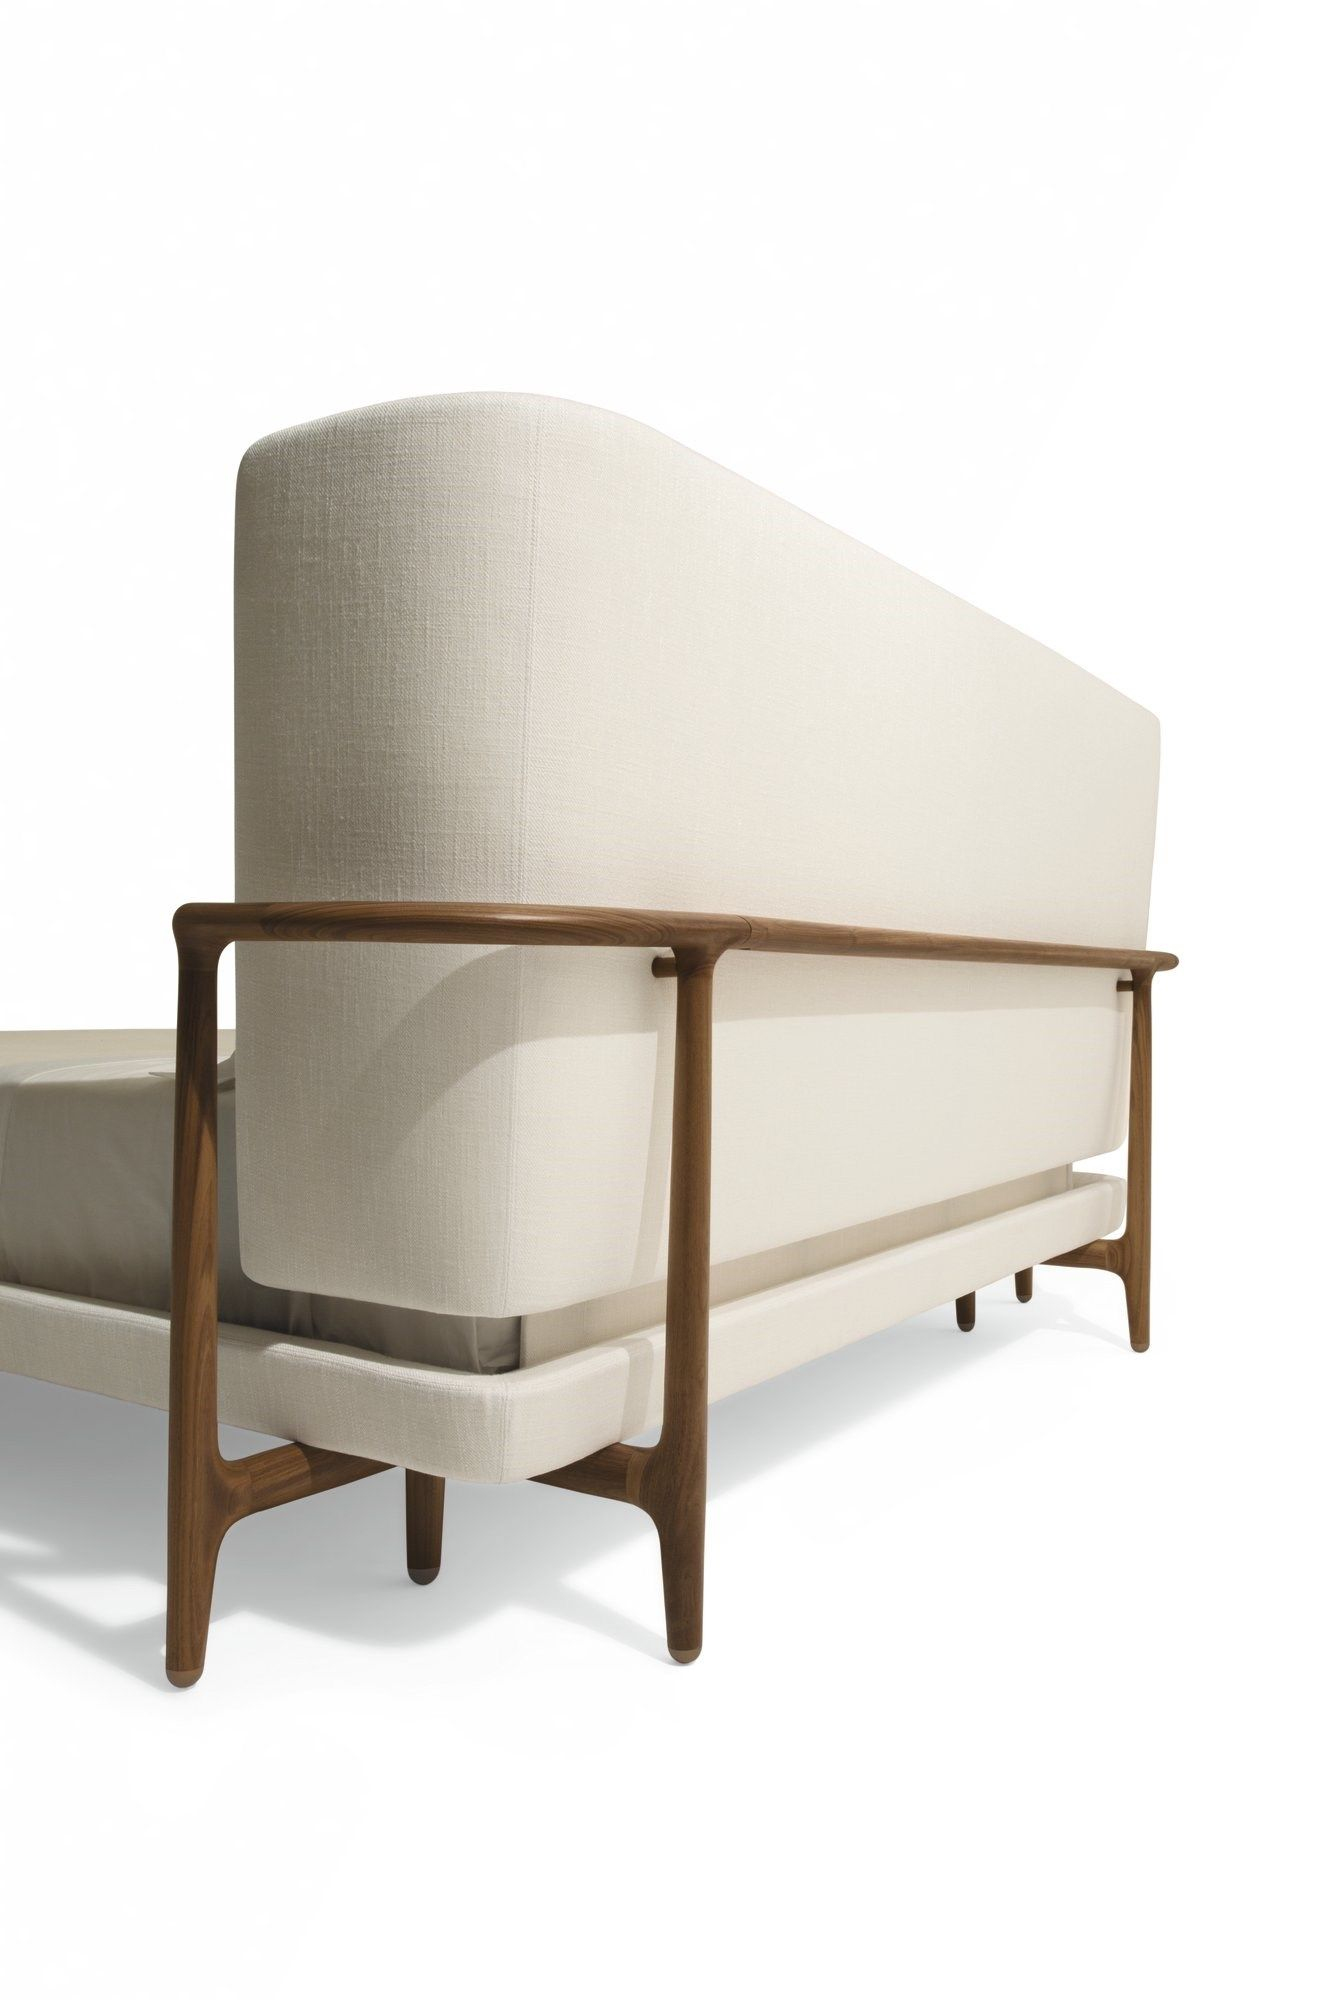 Pin by CCD GUO CONG on Furniture 家具 Double bed designs